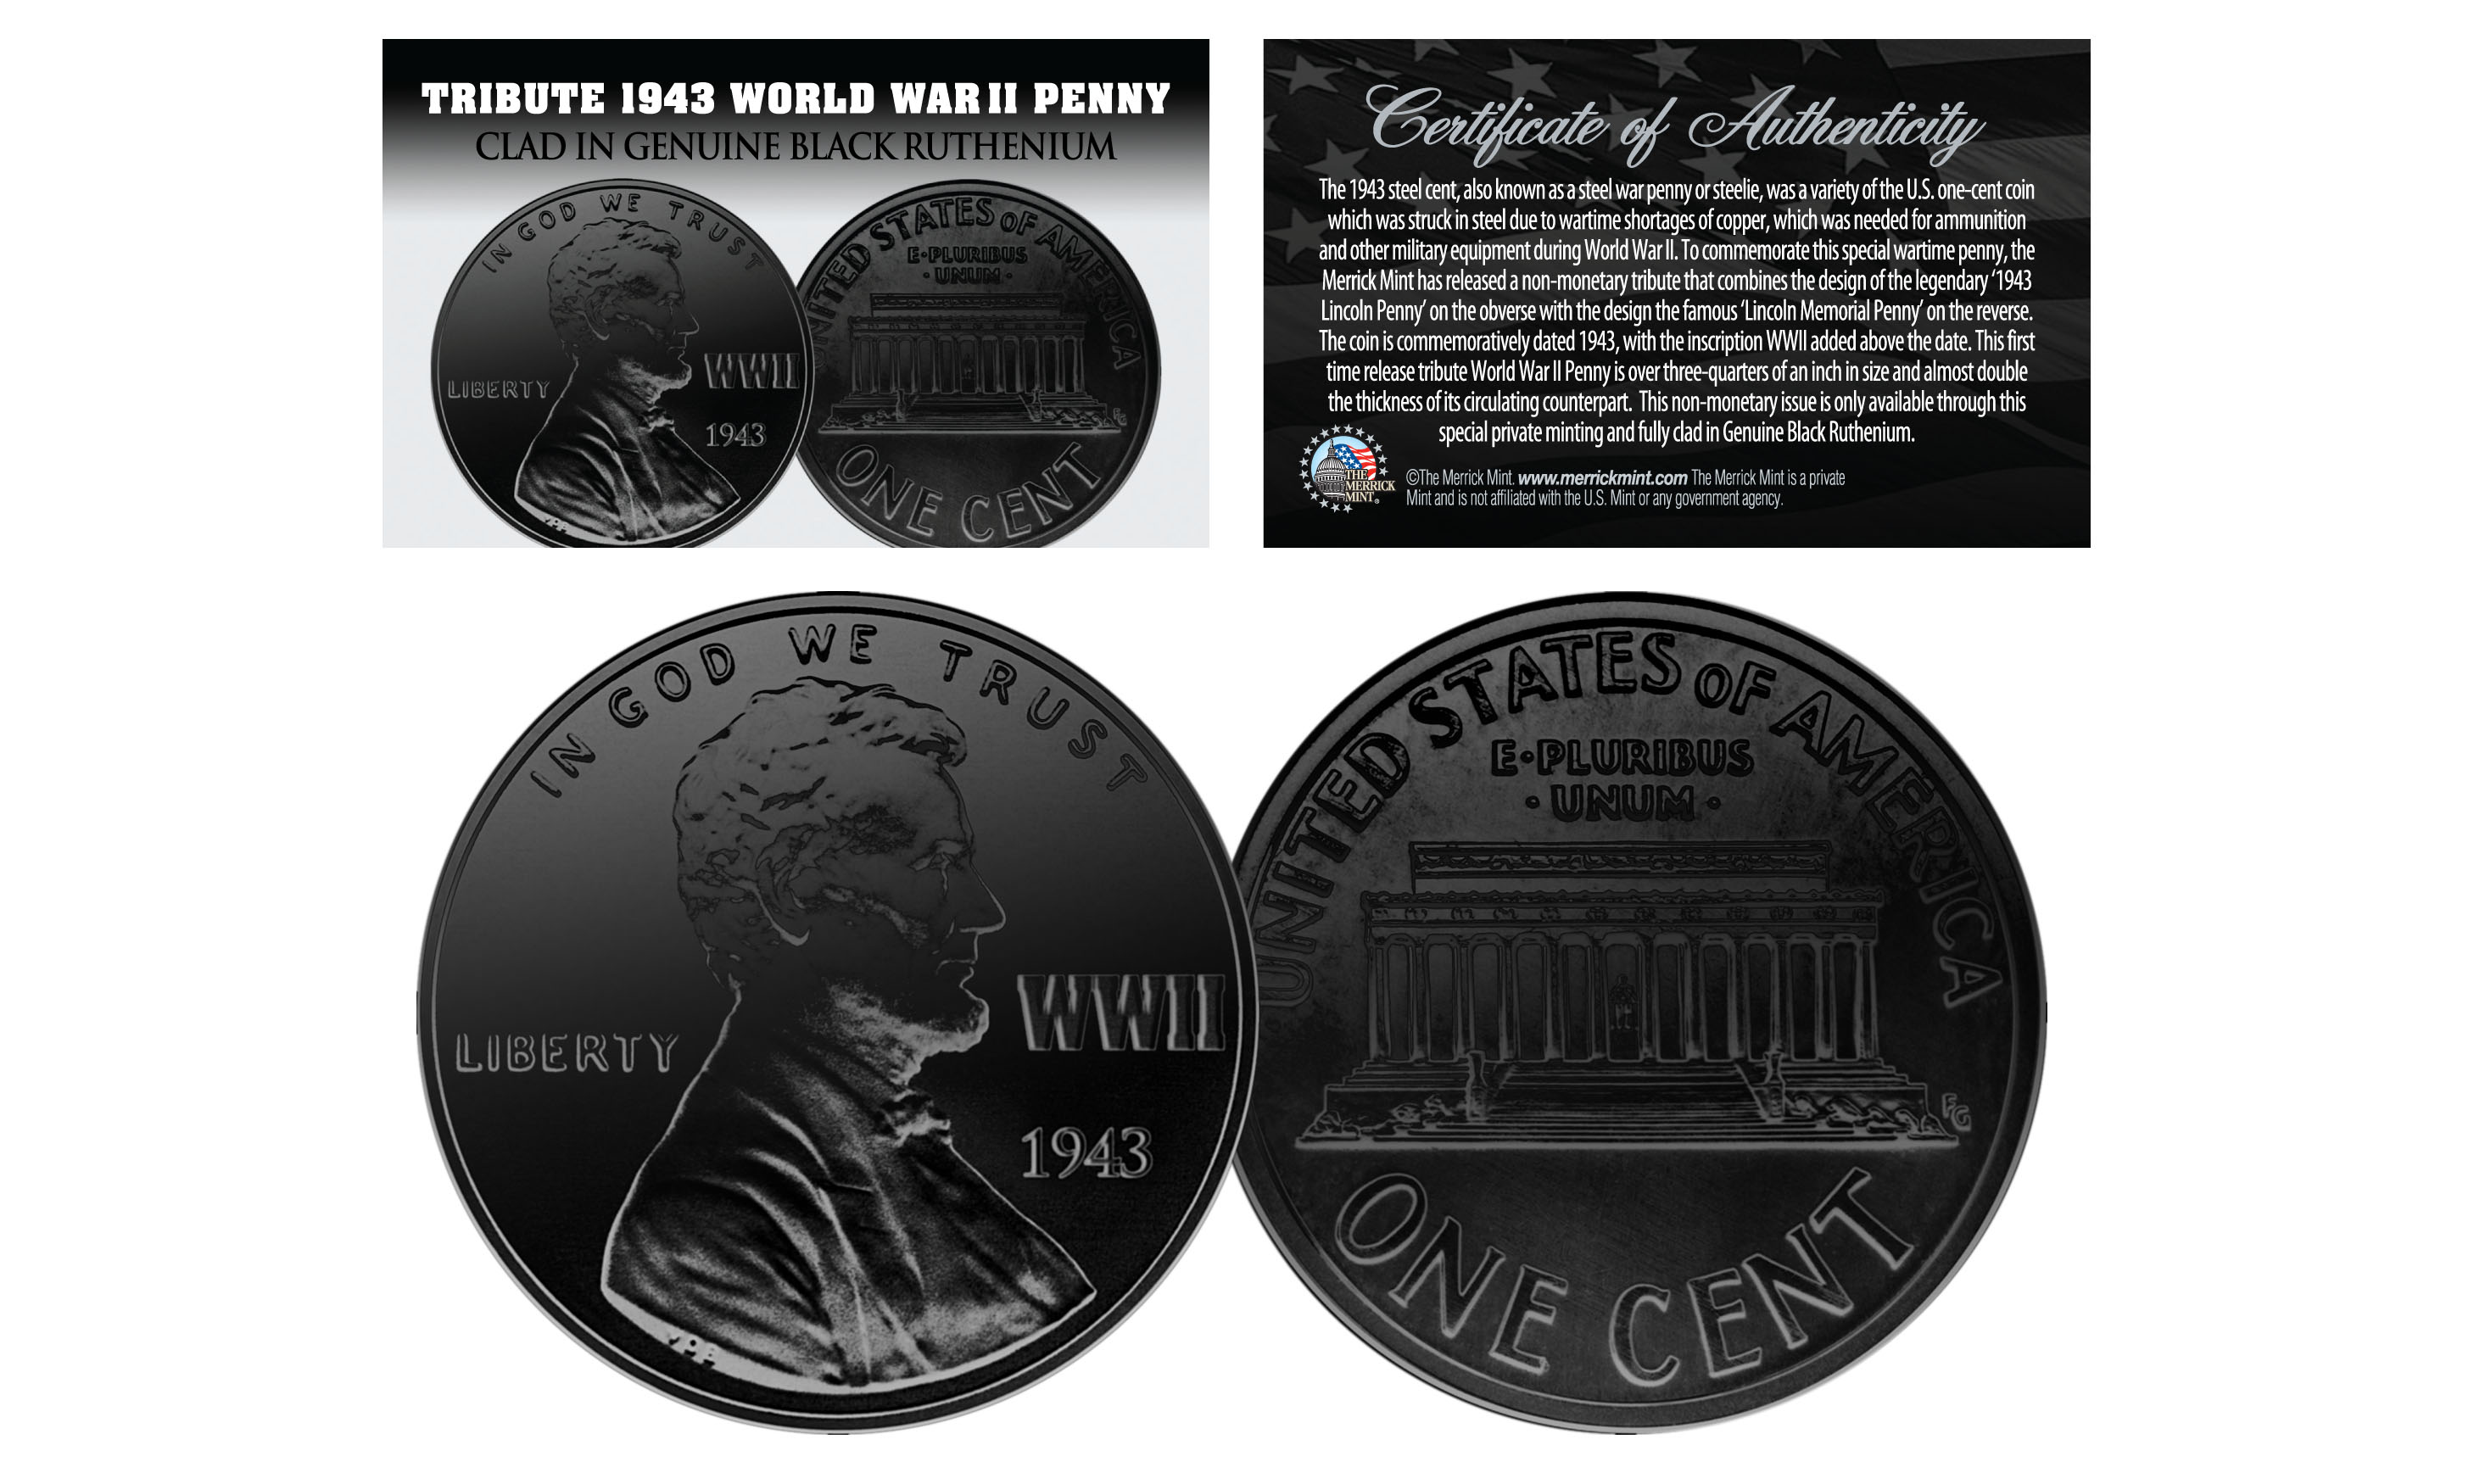 1943 Tribute Steelie Wwii Penny Coin Clad In Genuine Black Ruthenium